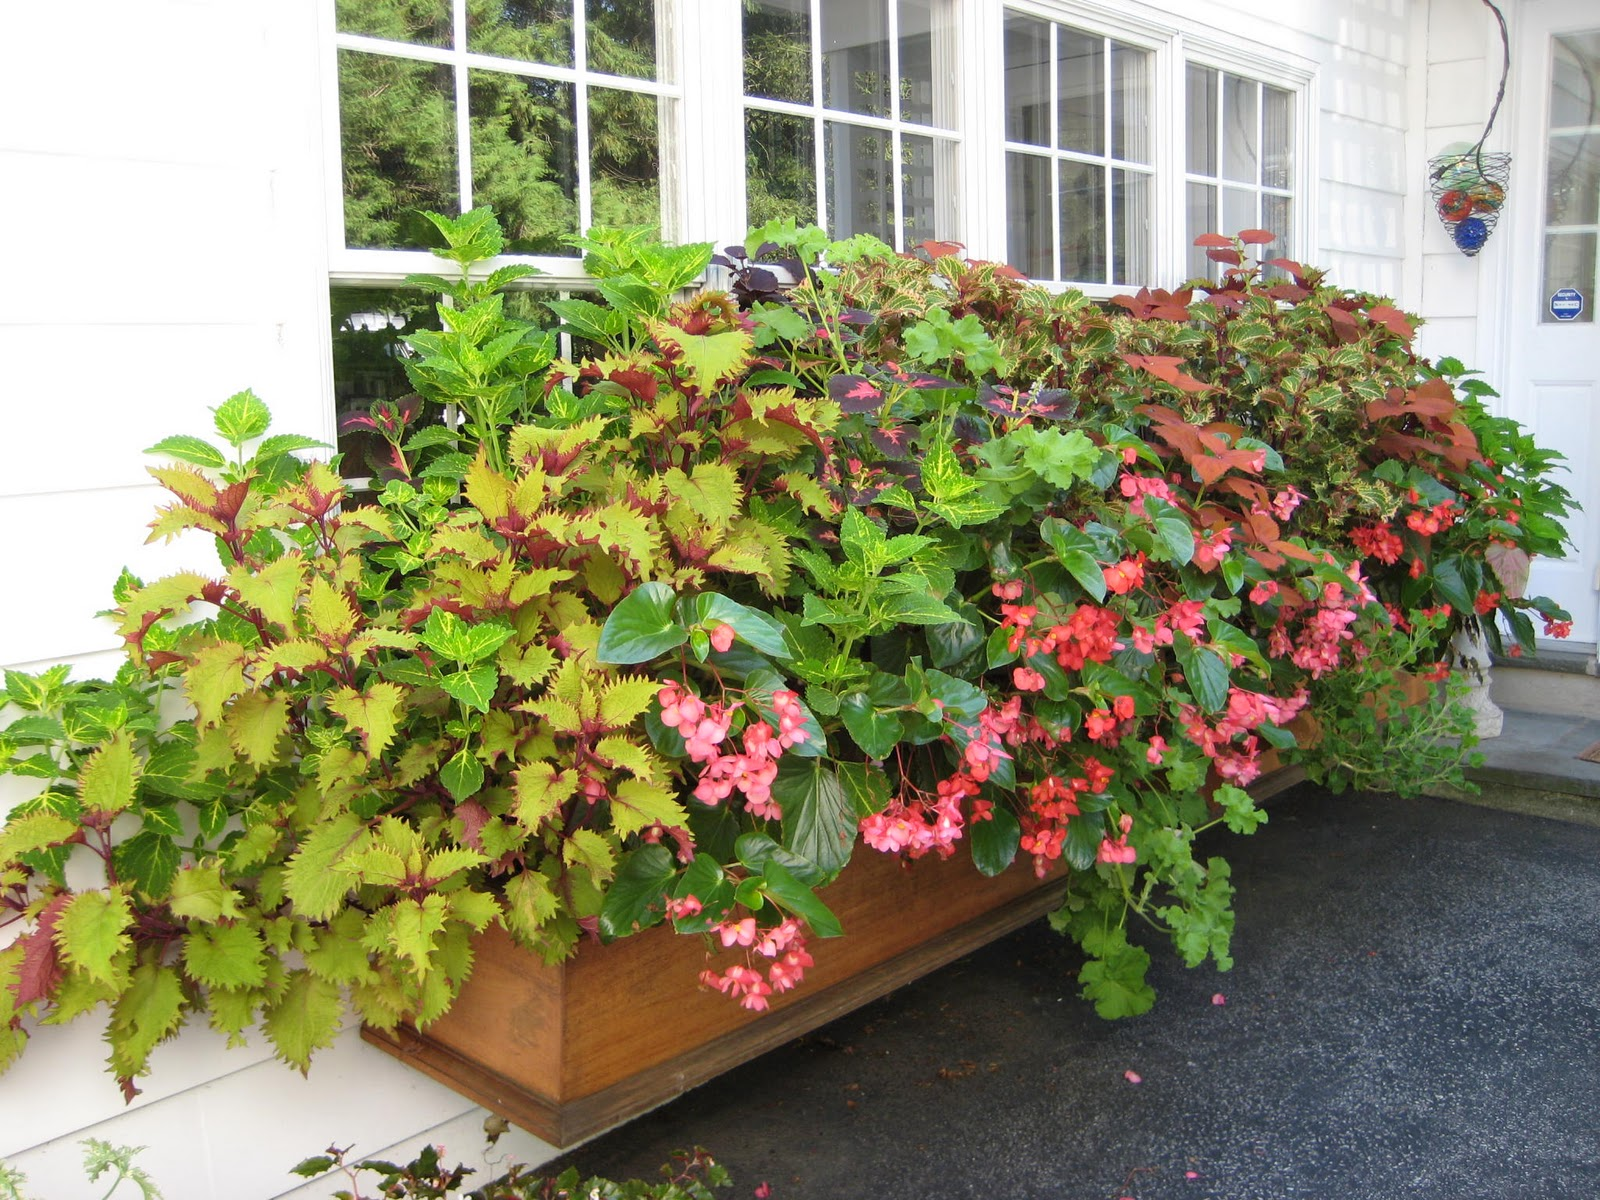 Window box ideas for shade annual flowers pots container gar.